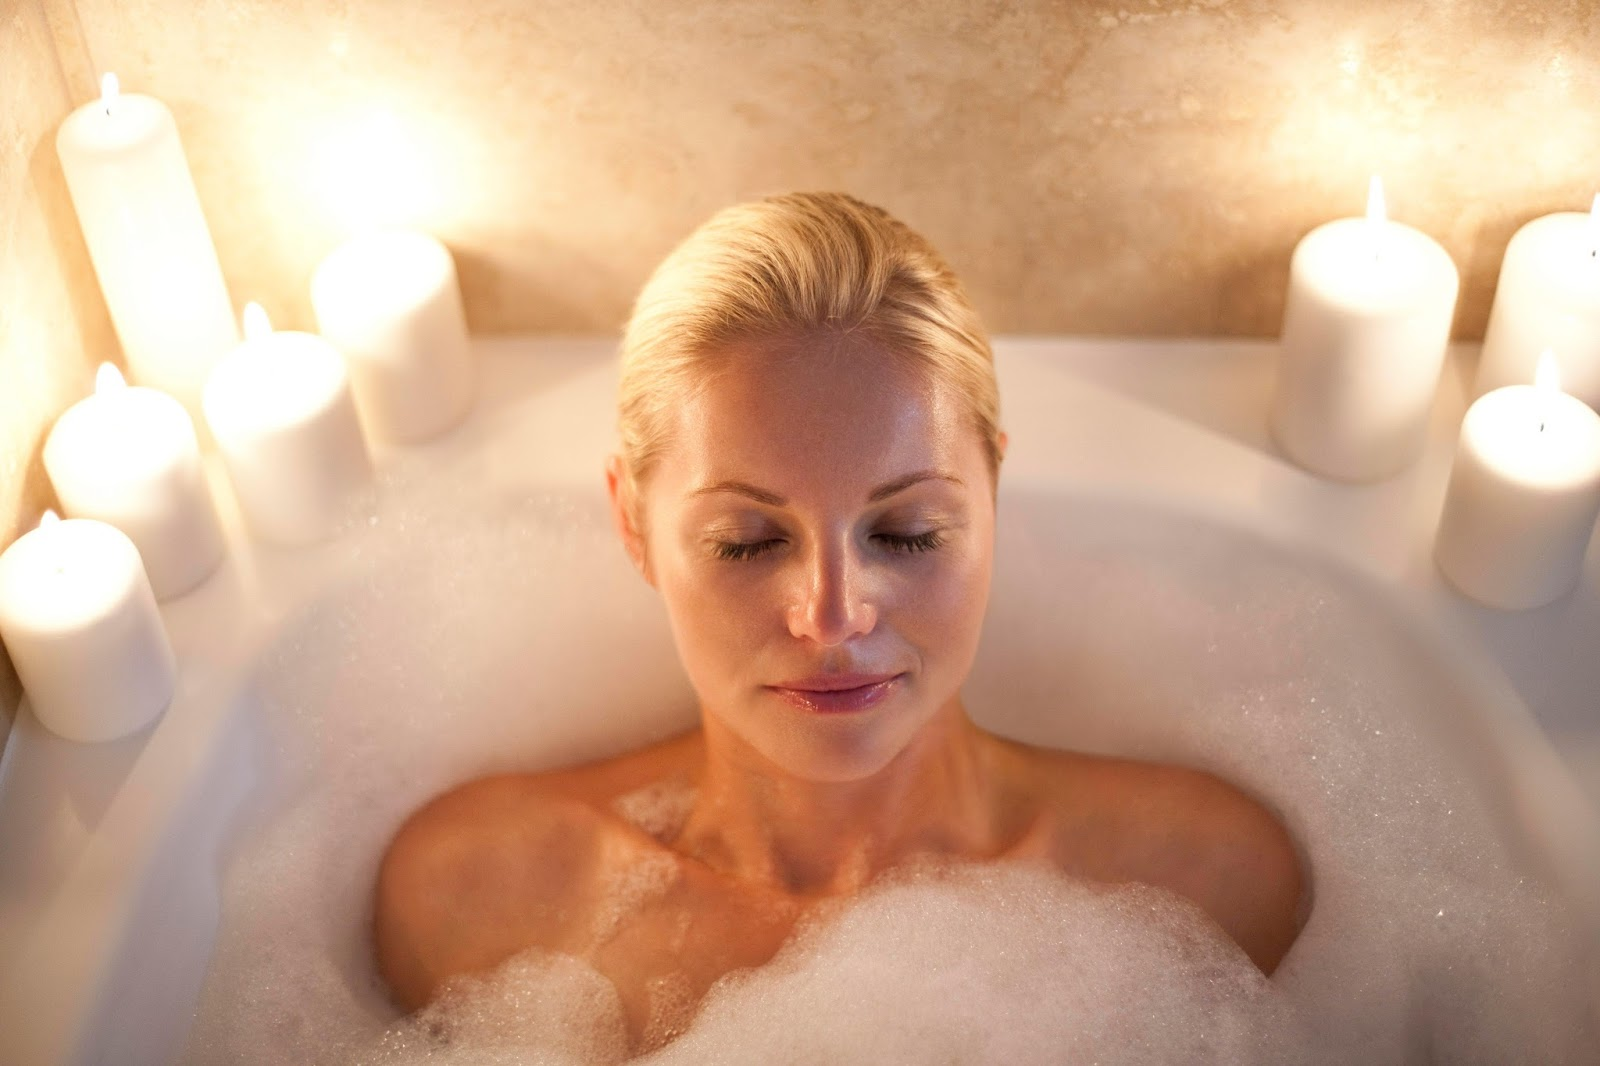 Baths are a great way to relax after a stressful day, and with these luxury products bathing just got more exciting.